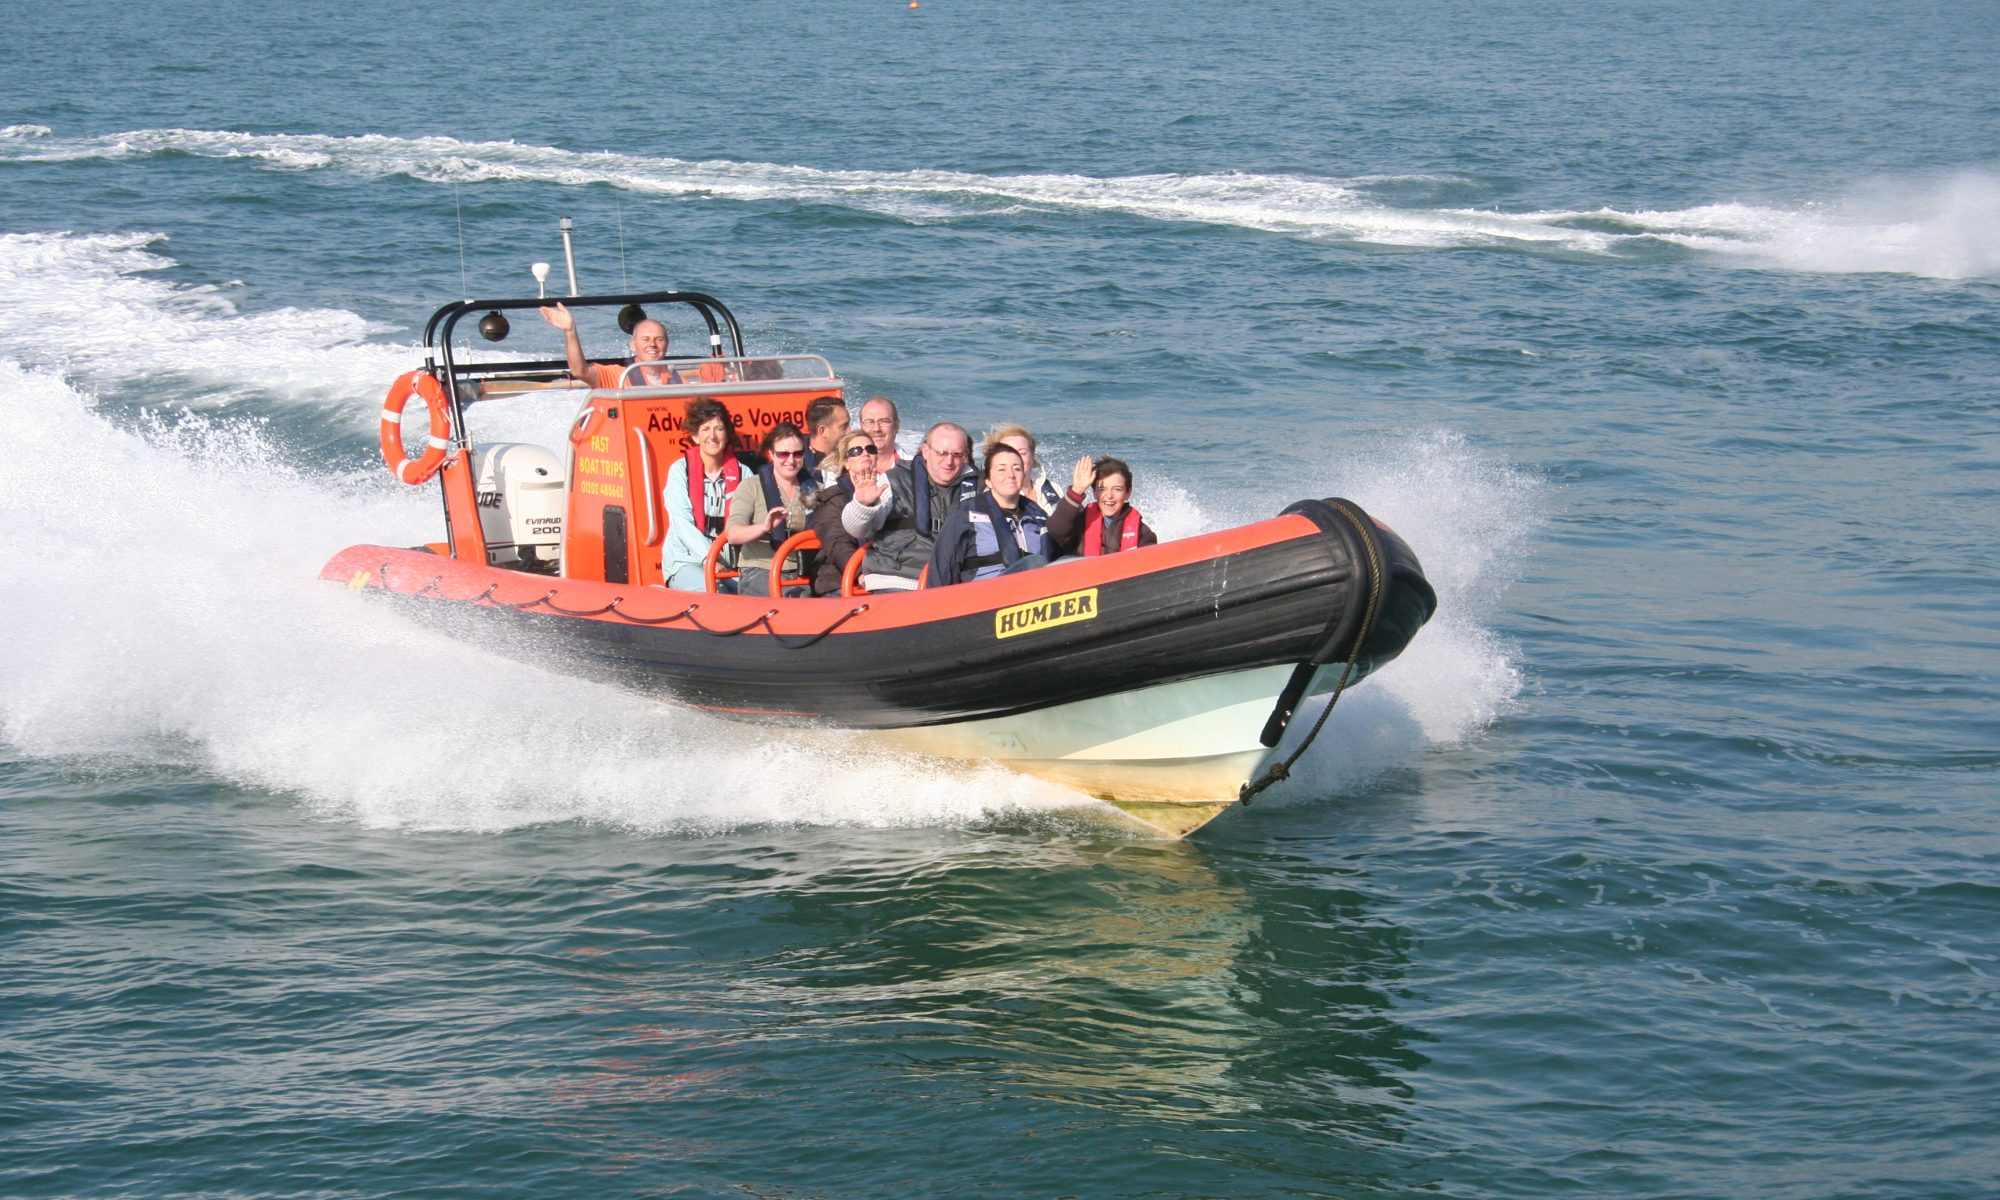 Adventure Voyages RIB Sensation on a bay blast